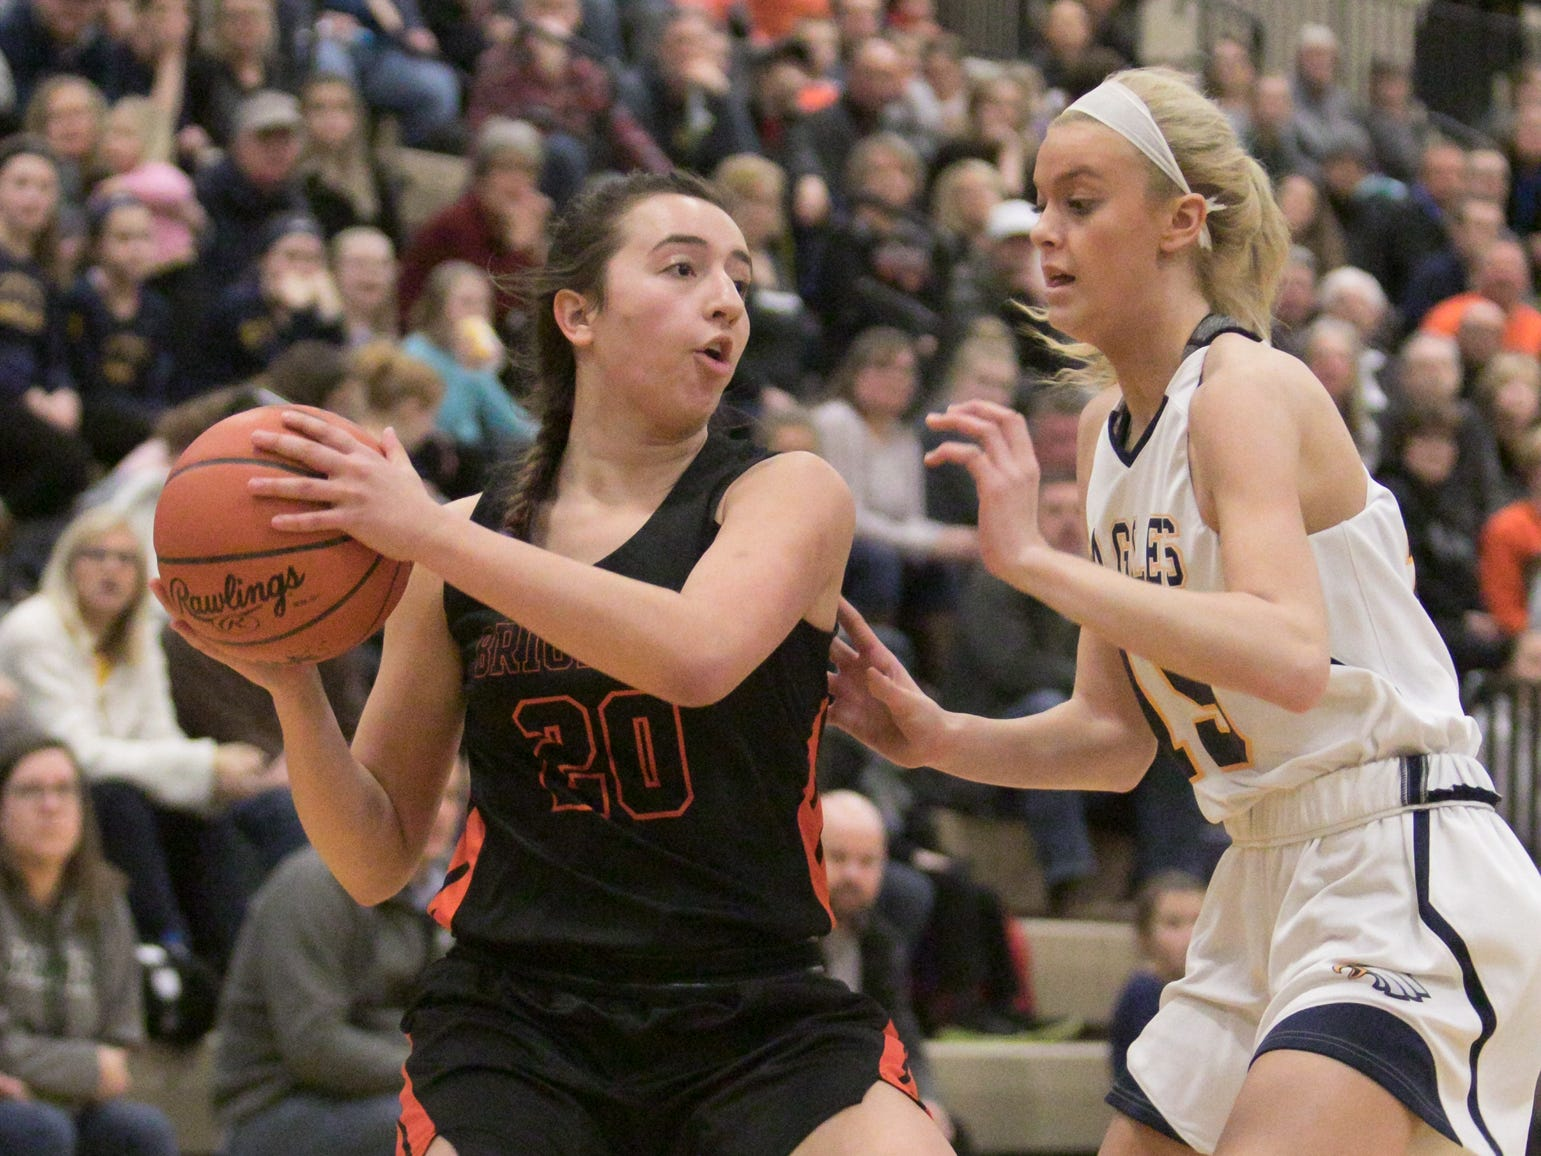 Isabella Viau of Brighton looks to pass, guarded by Hartland's Whitney Sollom in the game at Hartland Friday, Feb. 8, 2019.